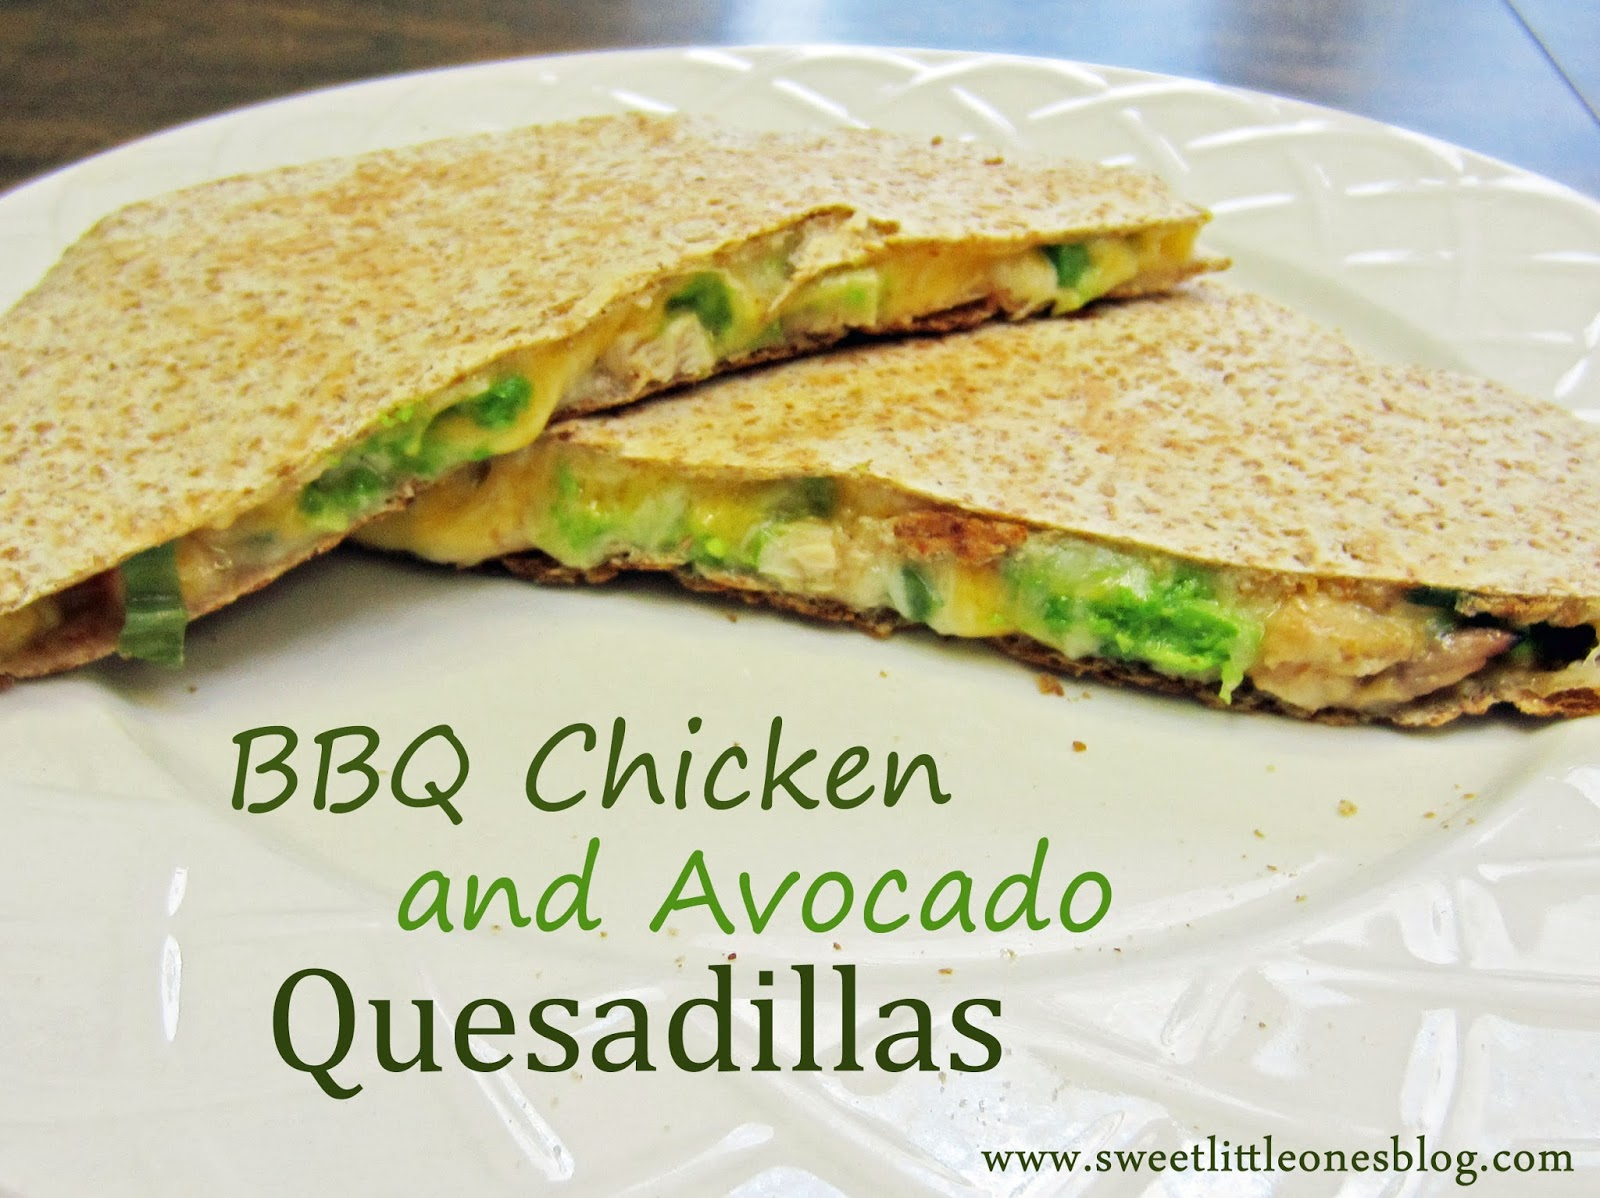 BBQ Chicken and Avocado Quesadillas - www.sweetlittleonesblog.com